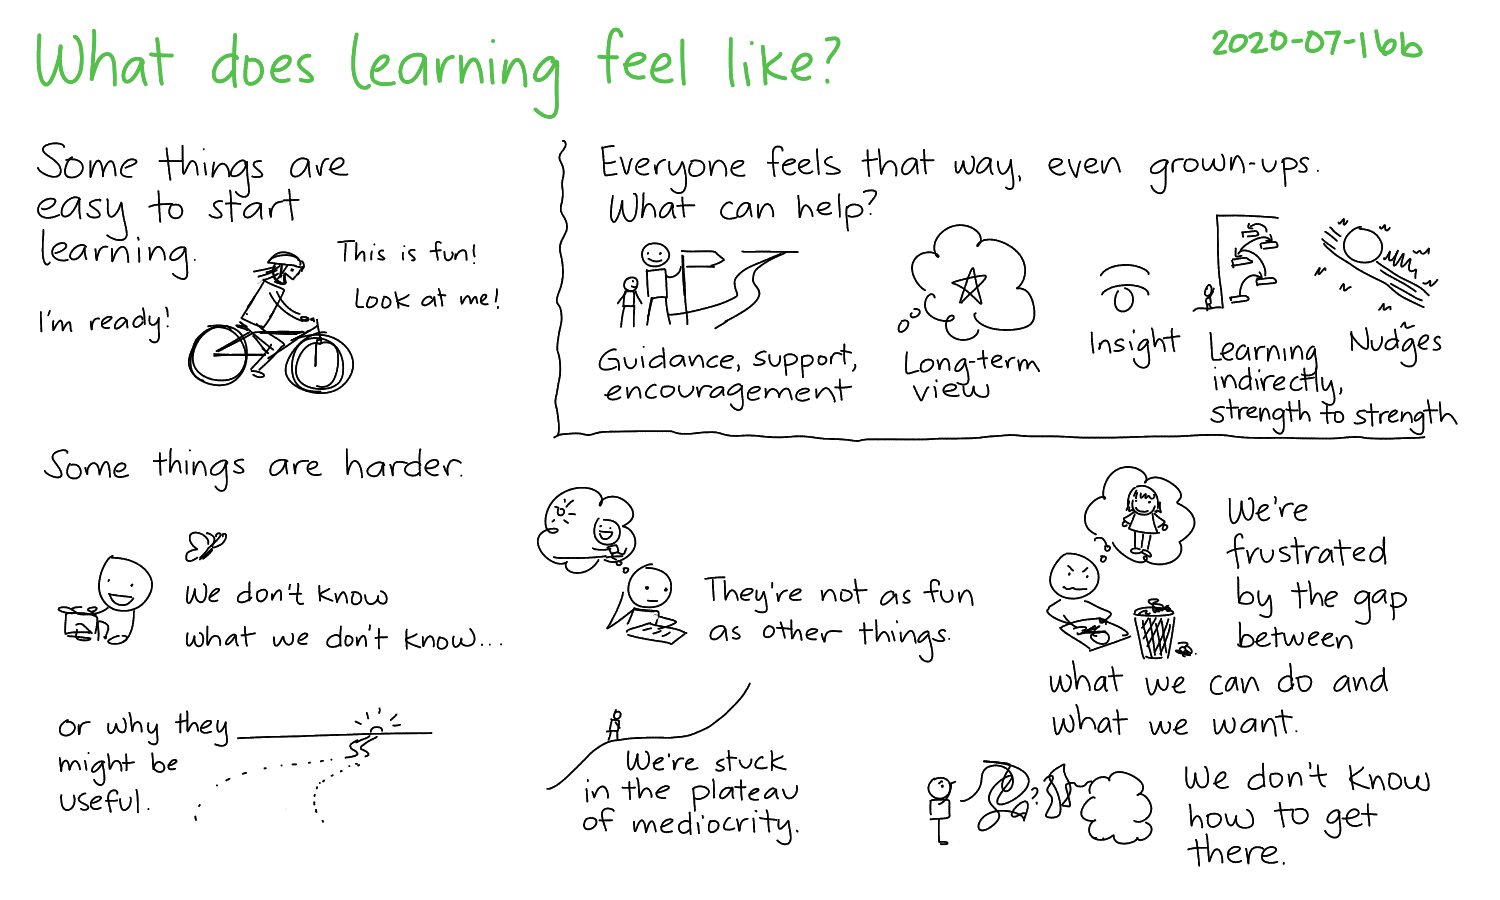 2020-07-16b What does learning feel like #parenting #learning #education.png